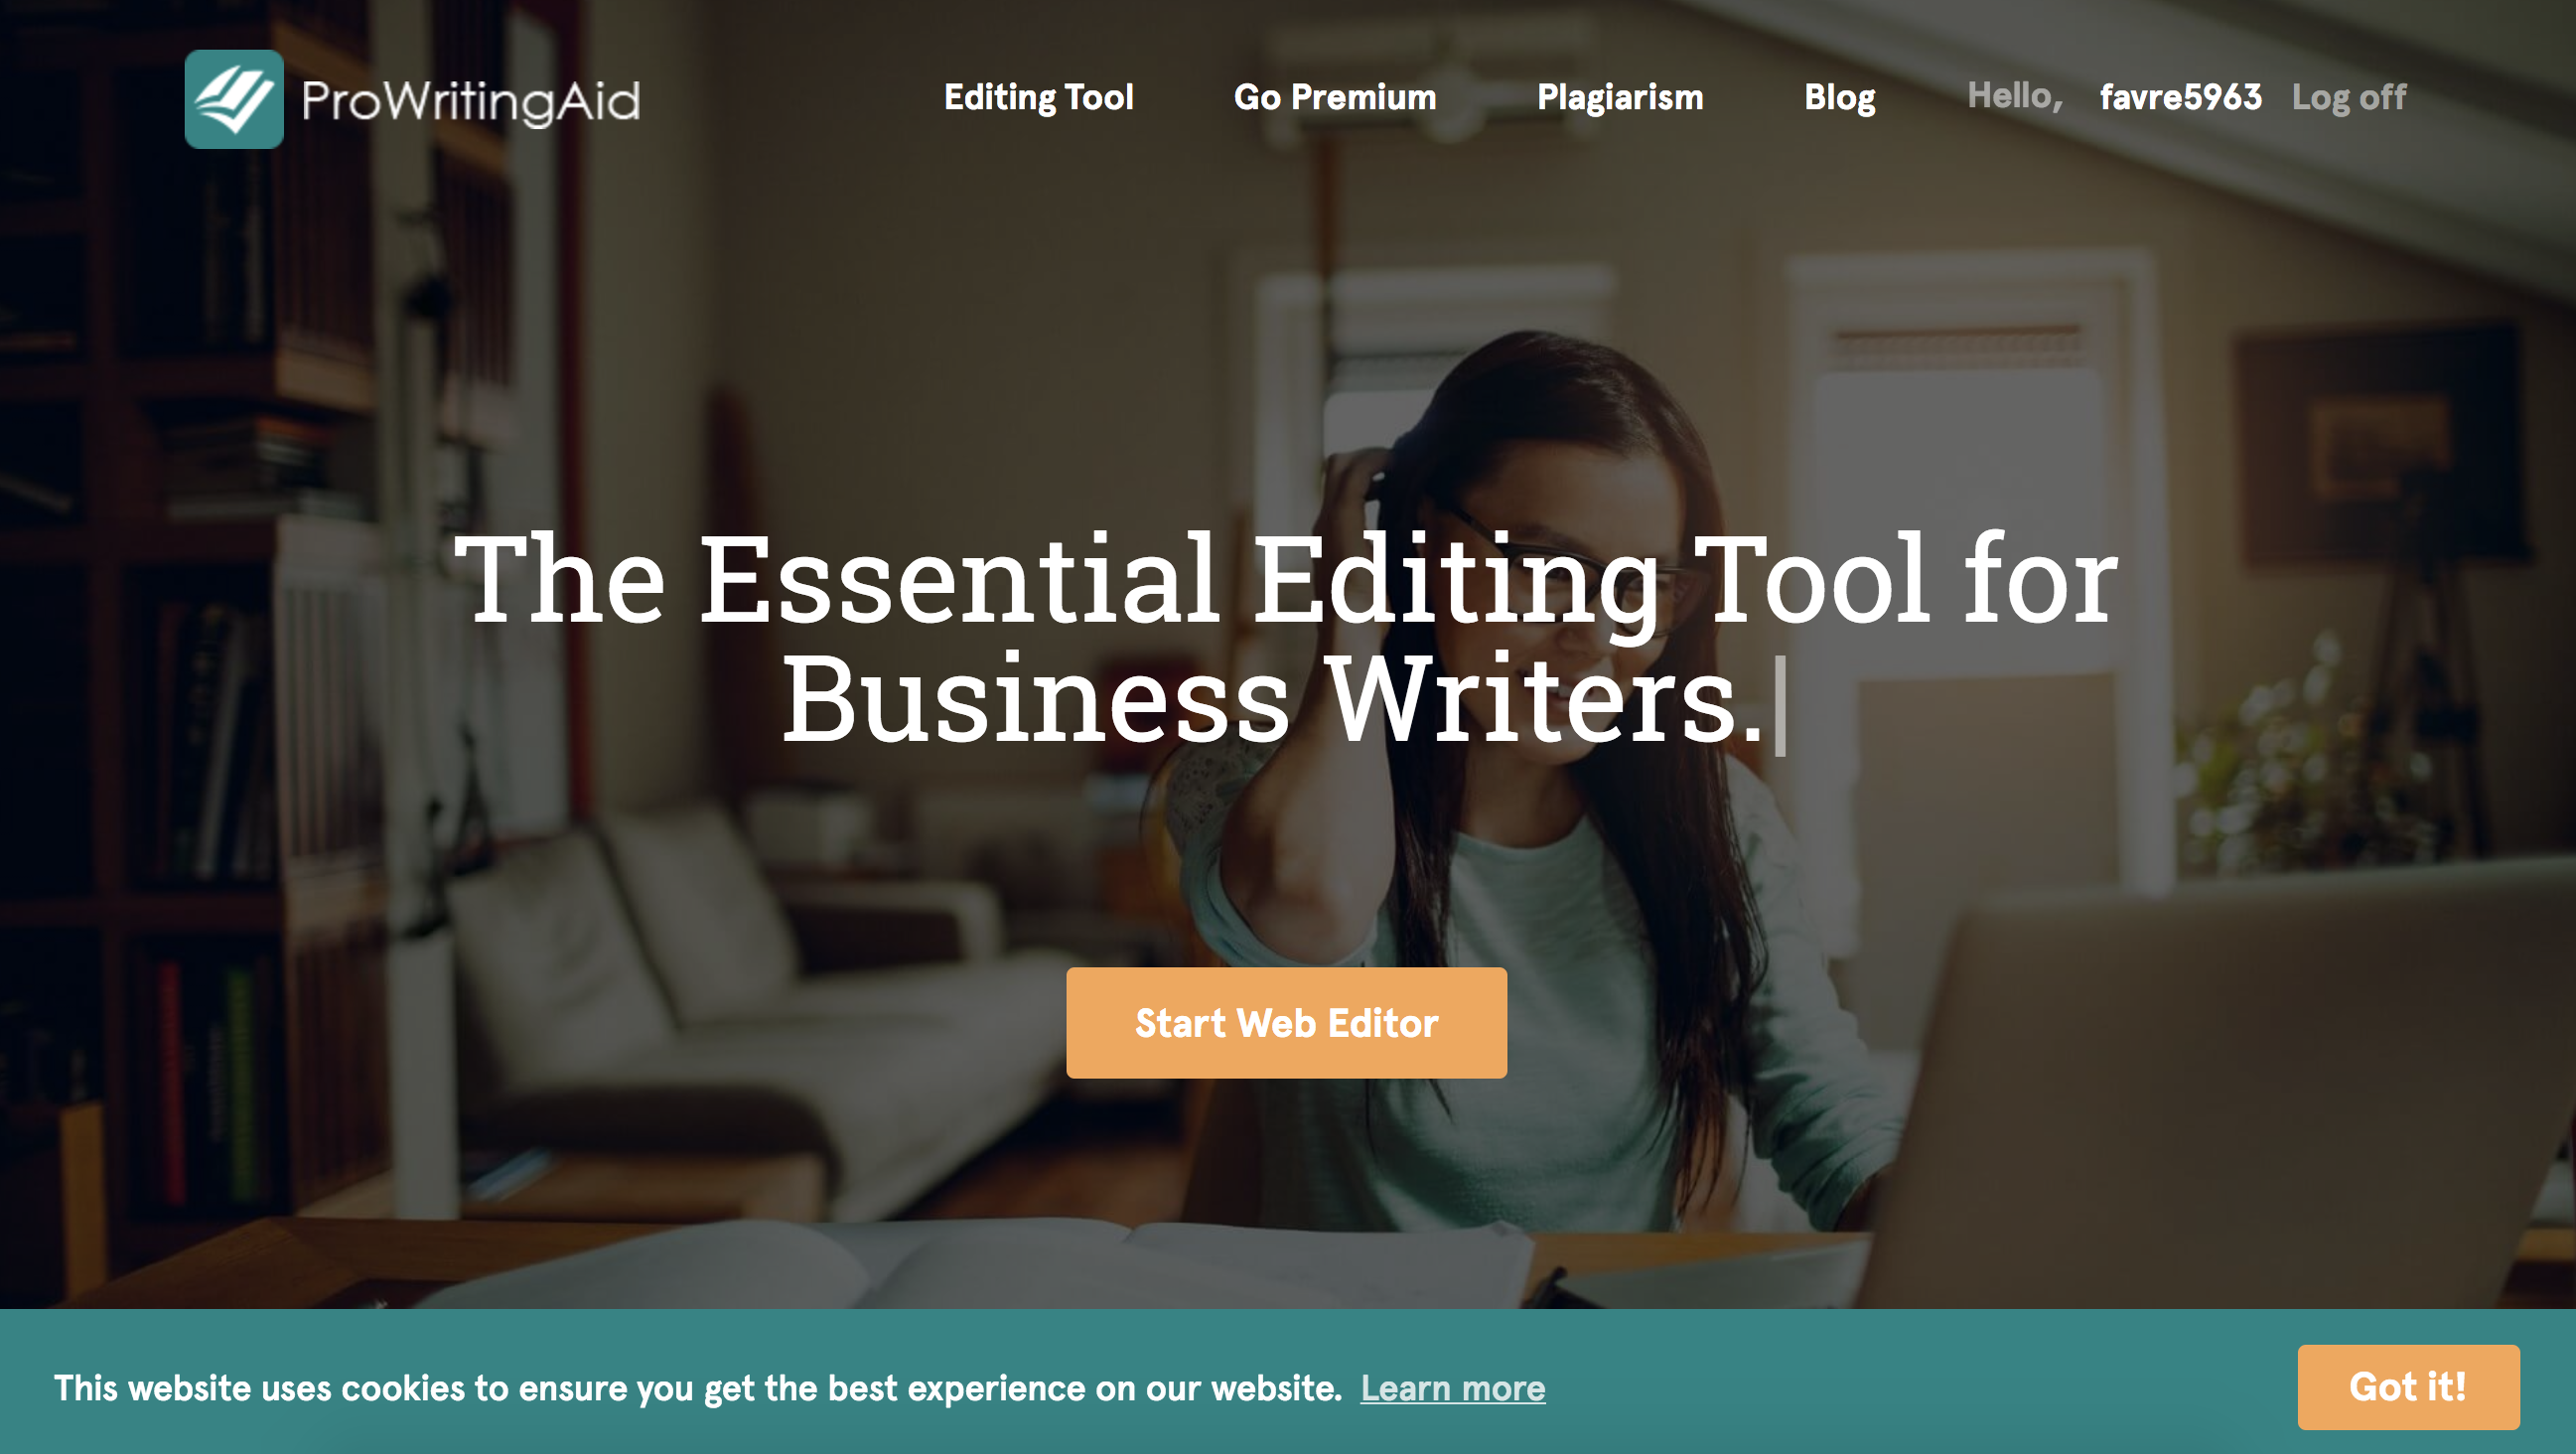 https://prowritingaid.com